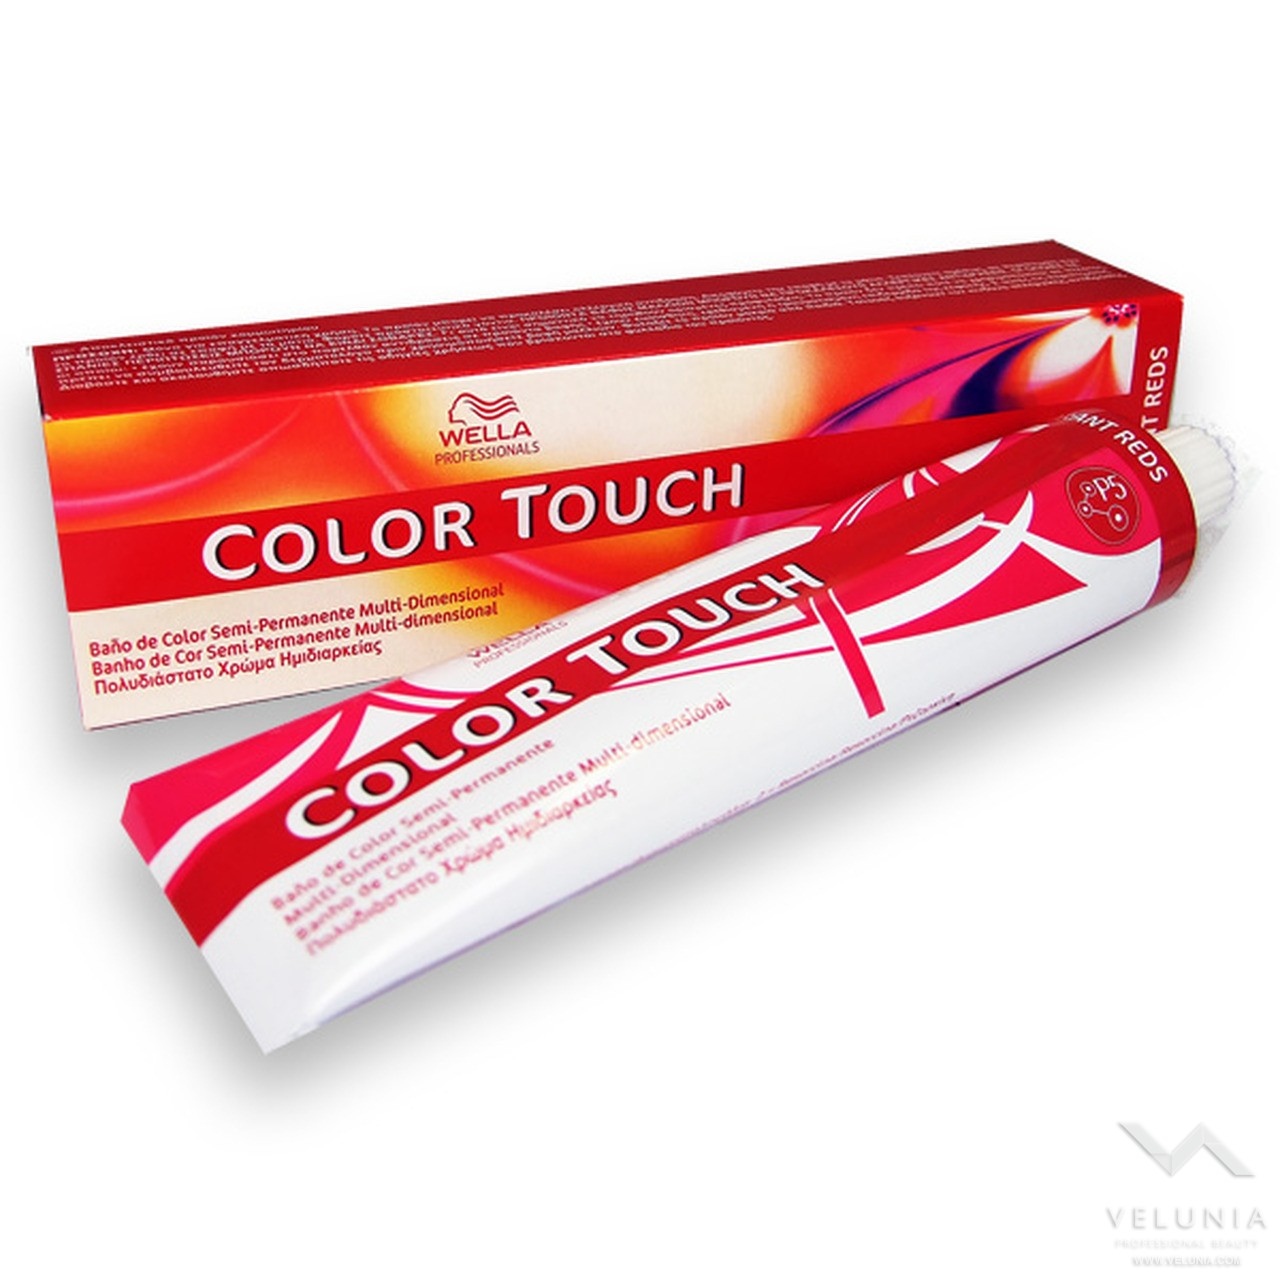 Wella Color Touch - 6/75 Biondo Scuro Sabbia Mogano 1